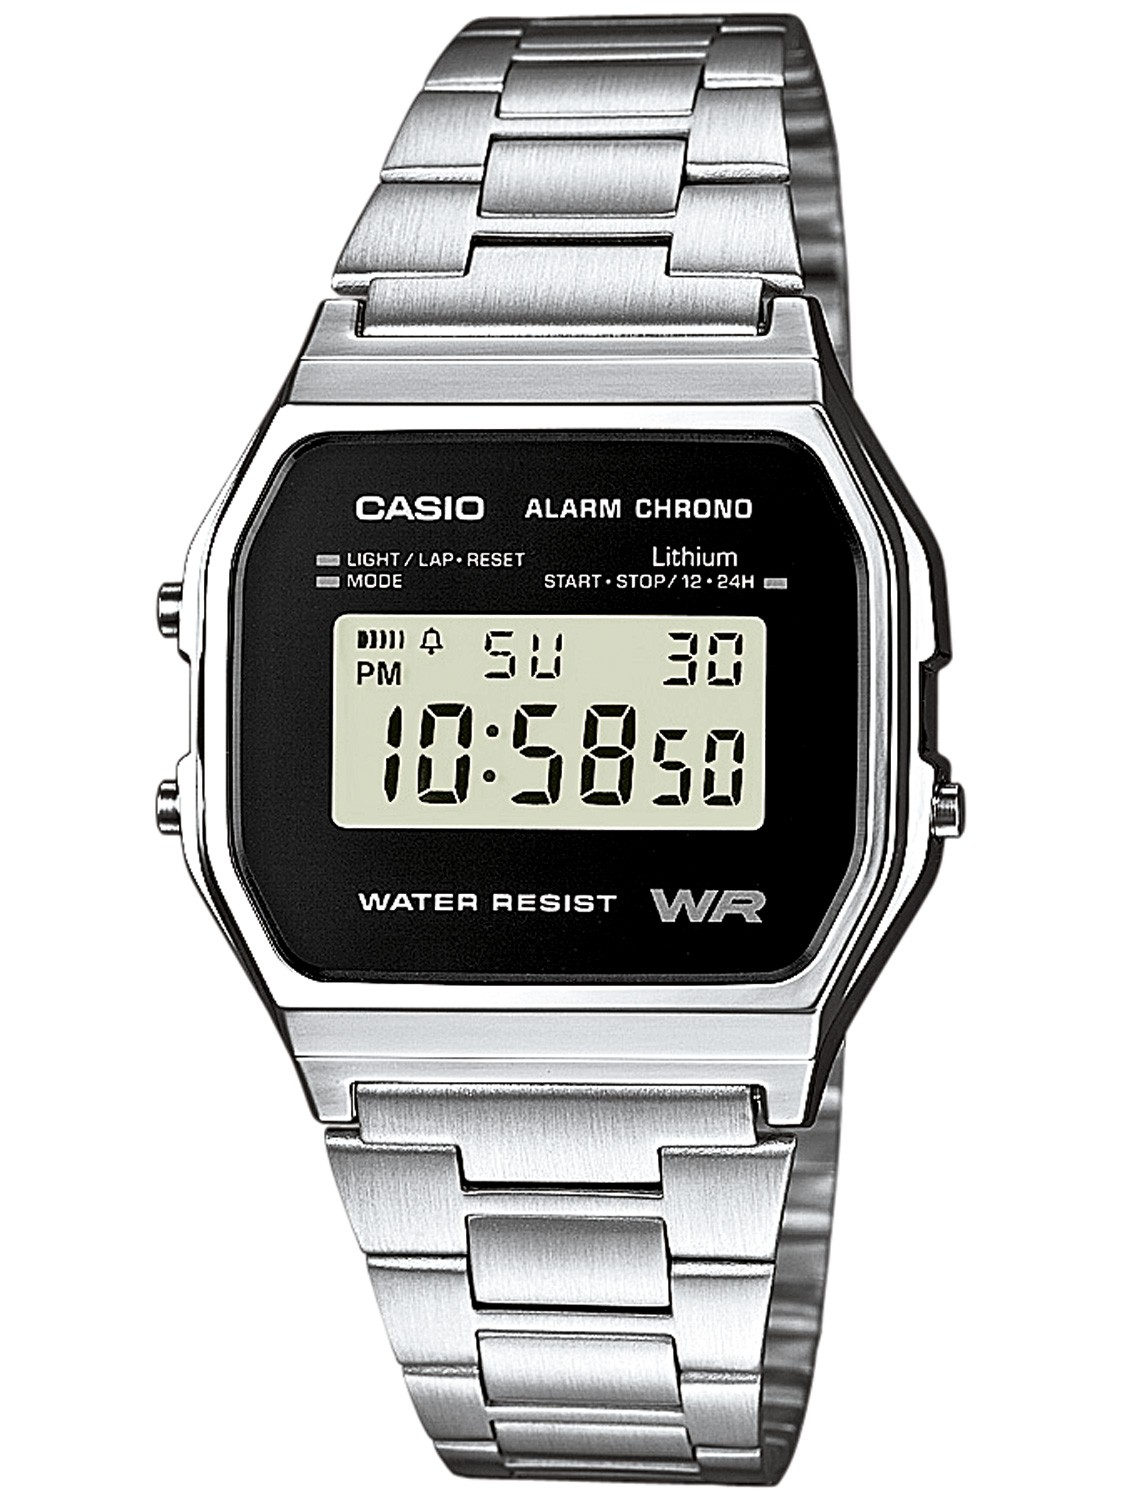 Casio A158WEA-1EF Alarm Chrono Digital Watch • uhrcenter